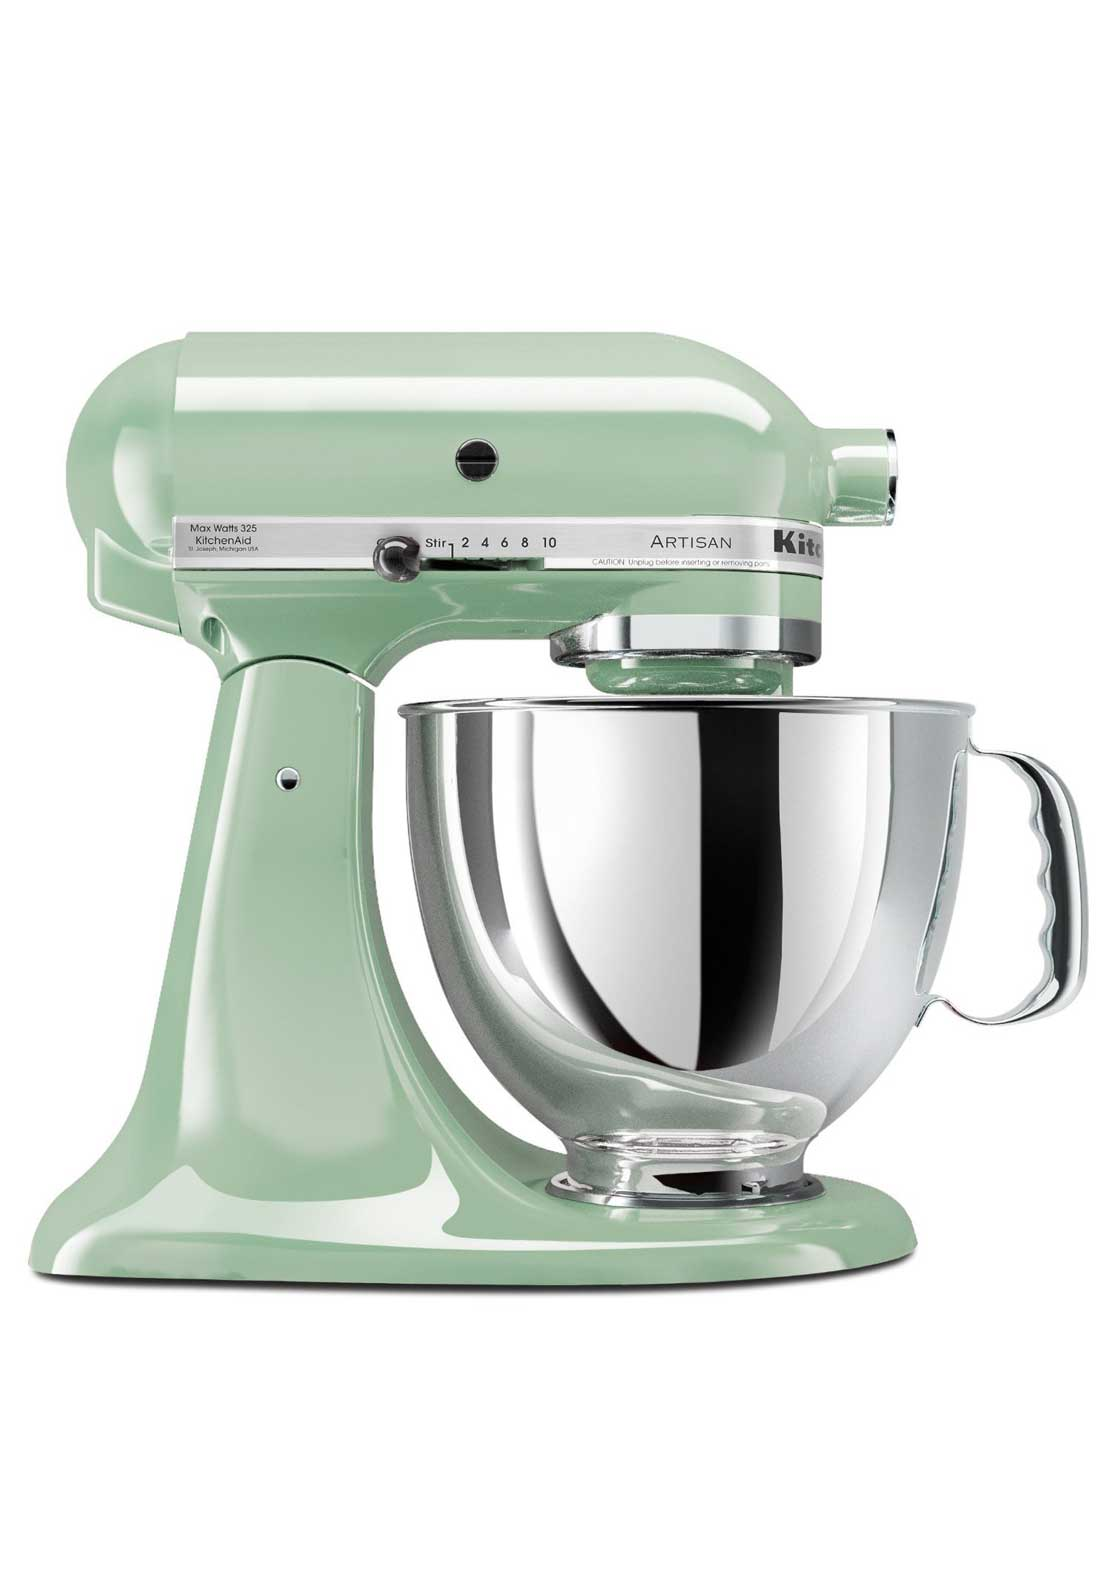 KitchenAid Artisan Stand Kitchen Mixer 4.8L, Pistachio Green